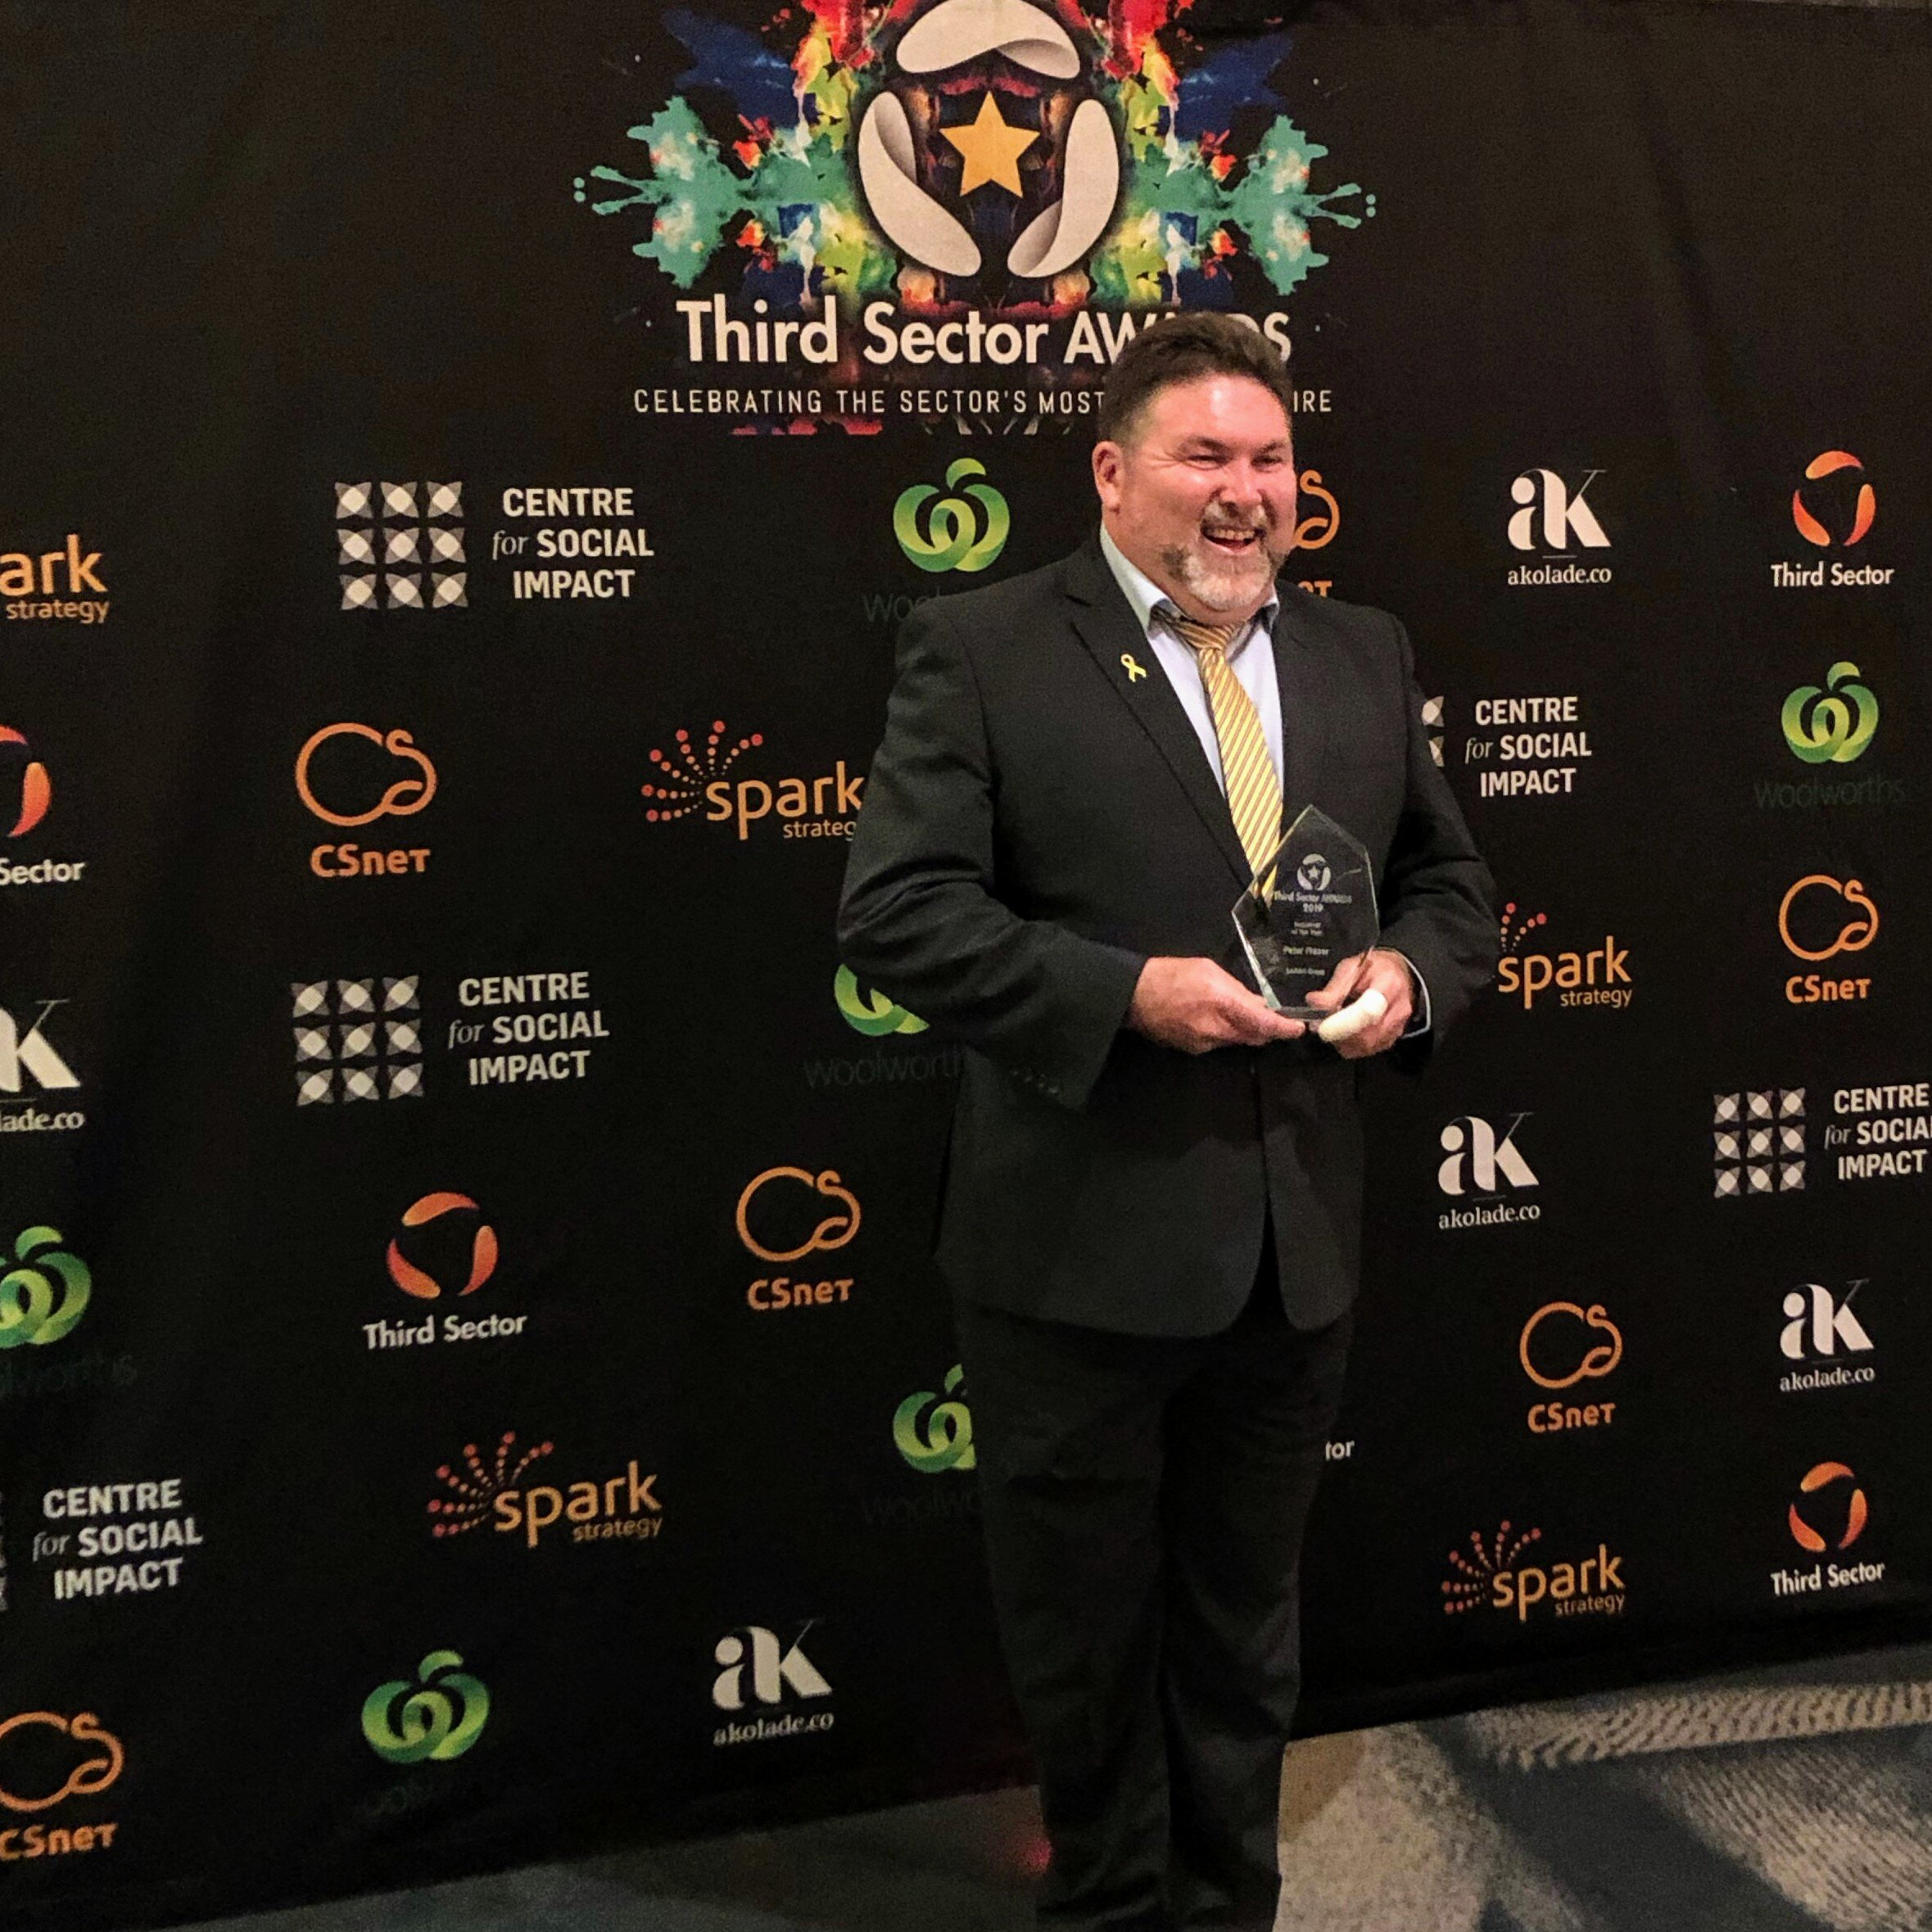 2019 Volunteer of the Year, Peter Frazer, as awarded by the Third Sector Awards